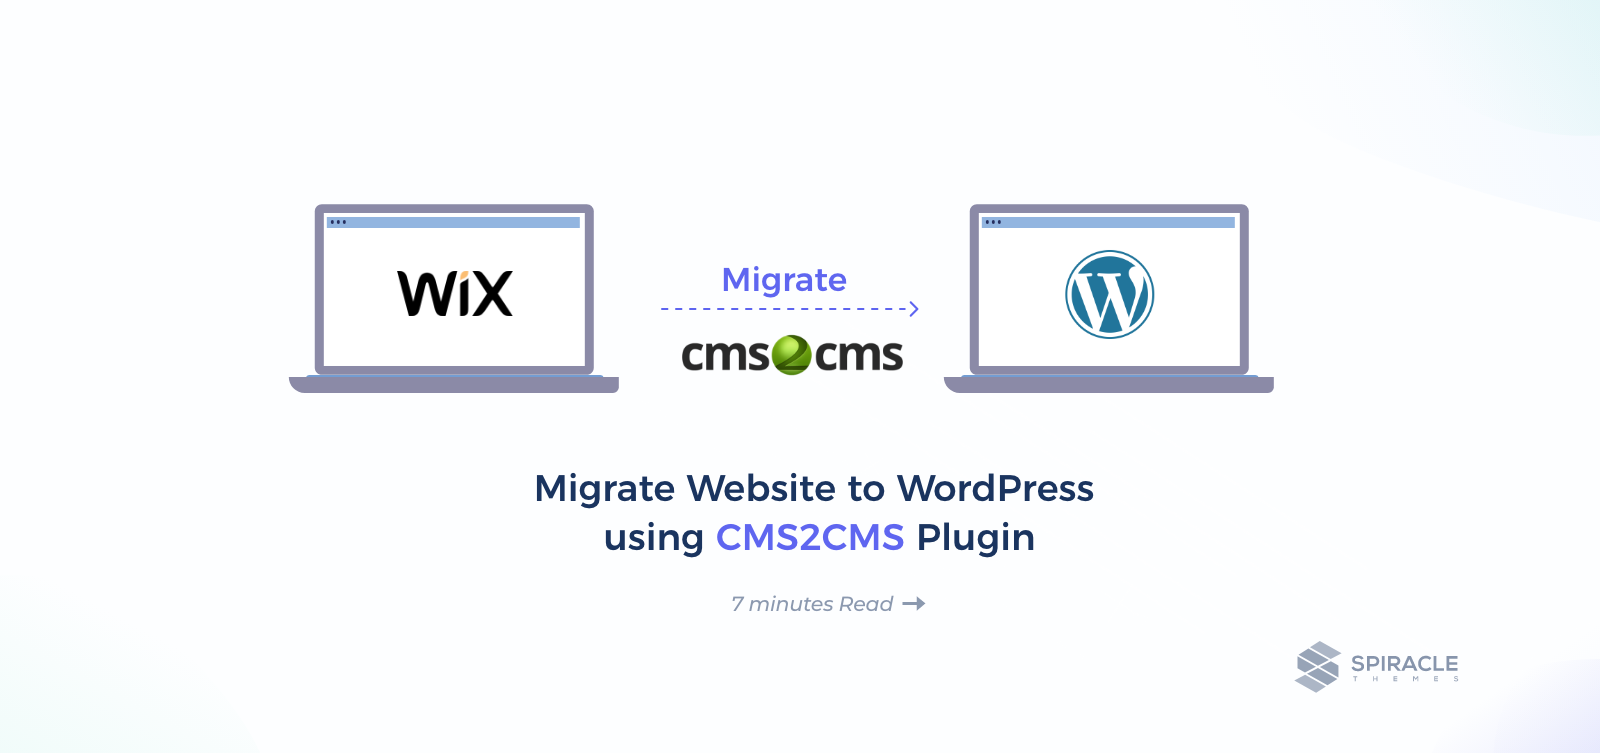 How to Migrate Website to WordPress using CMS2CMS Plugin